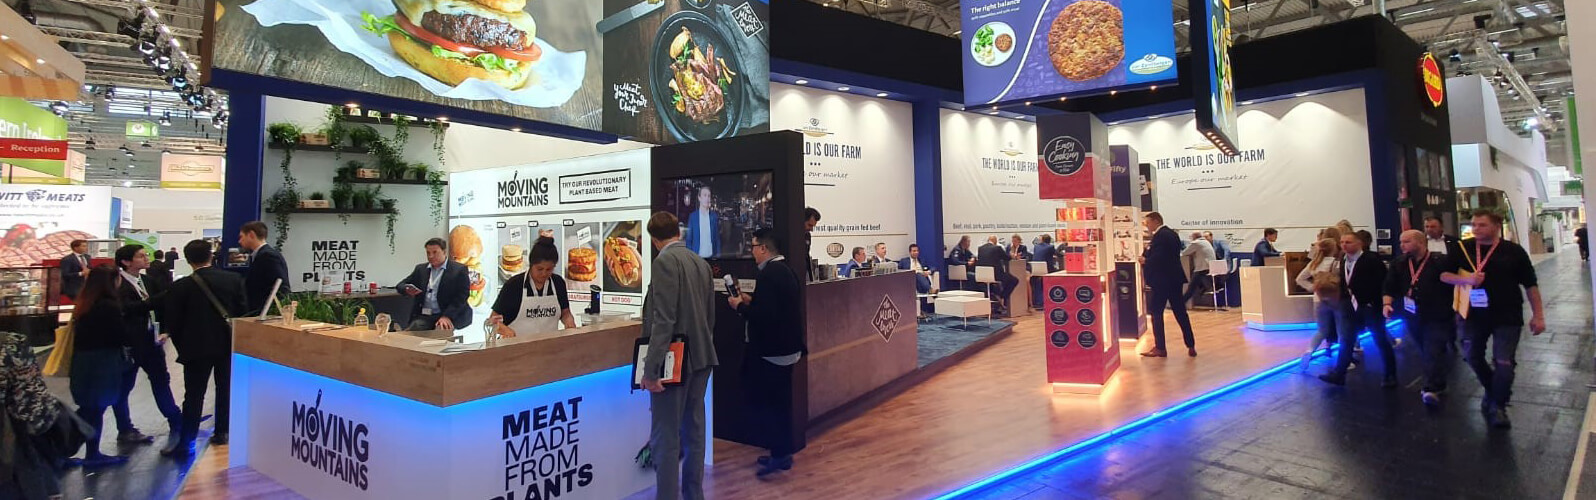 Jan Zandbergen Group - beursstand Anuga 2019